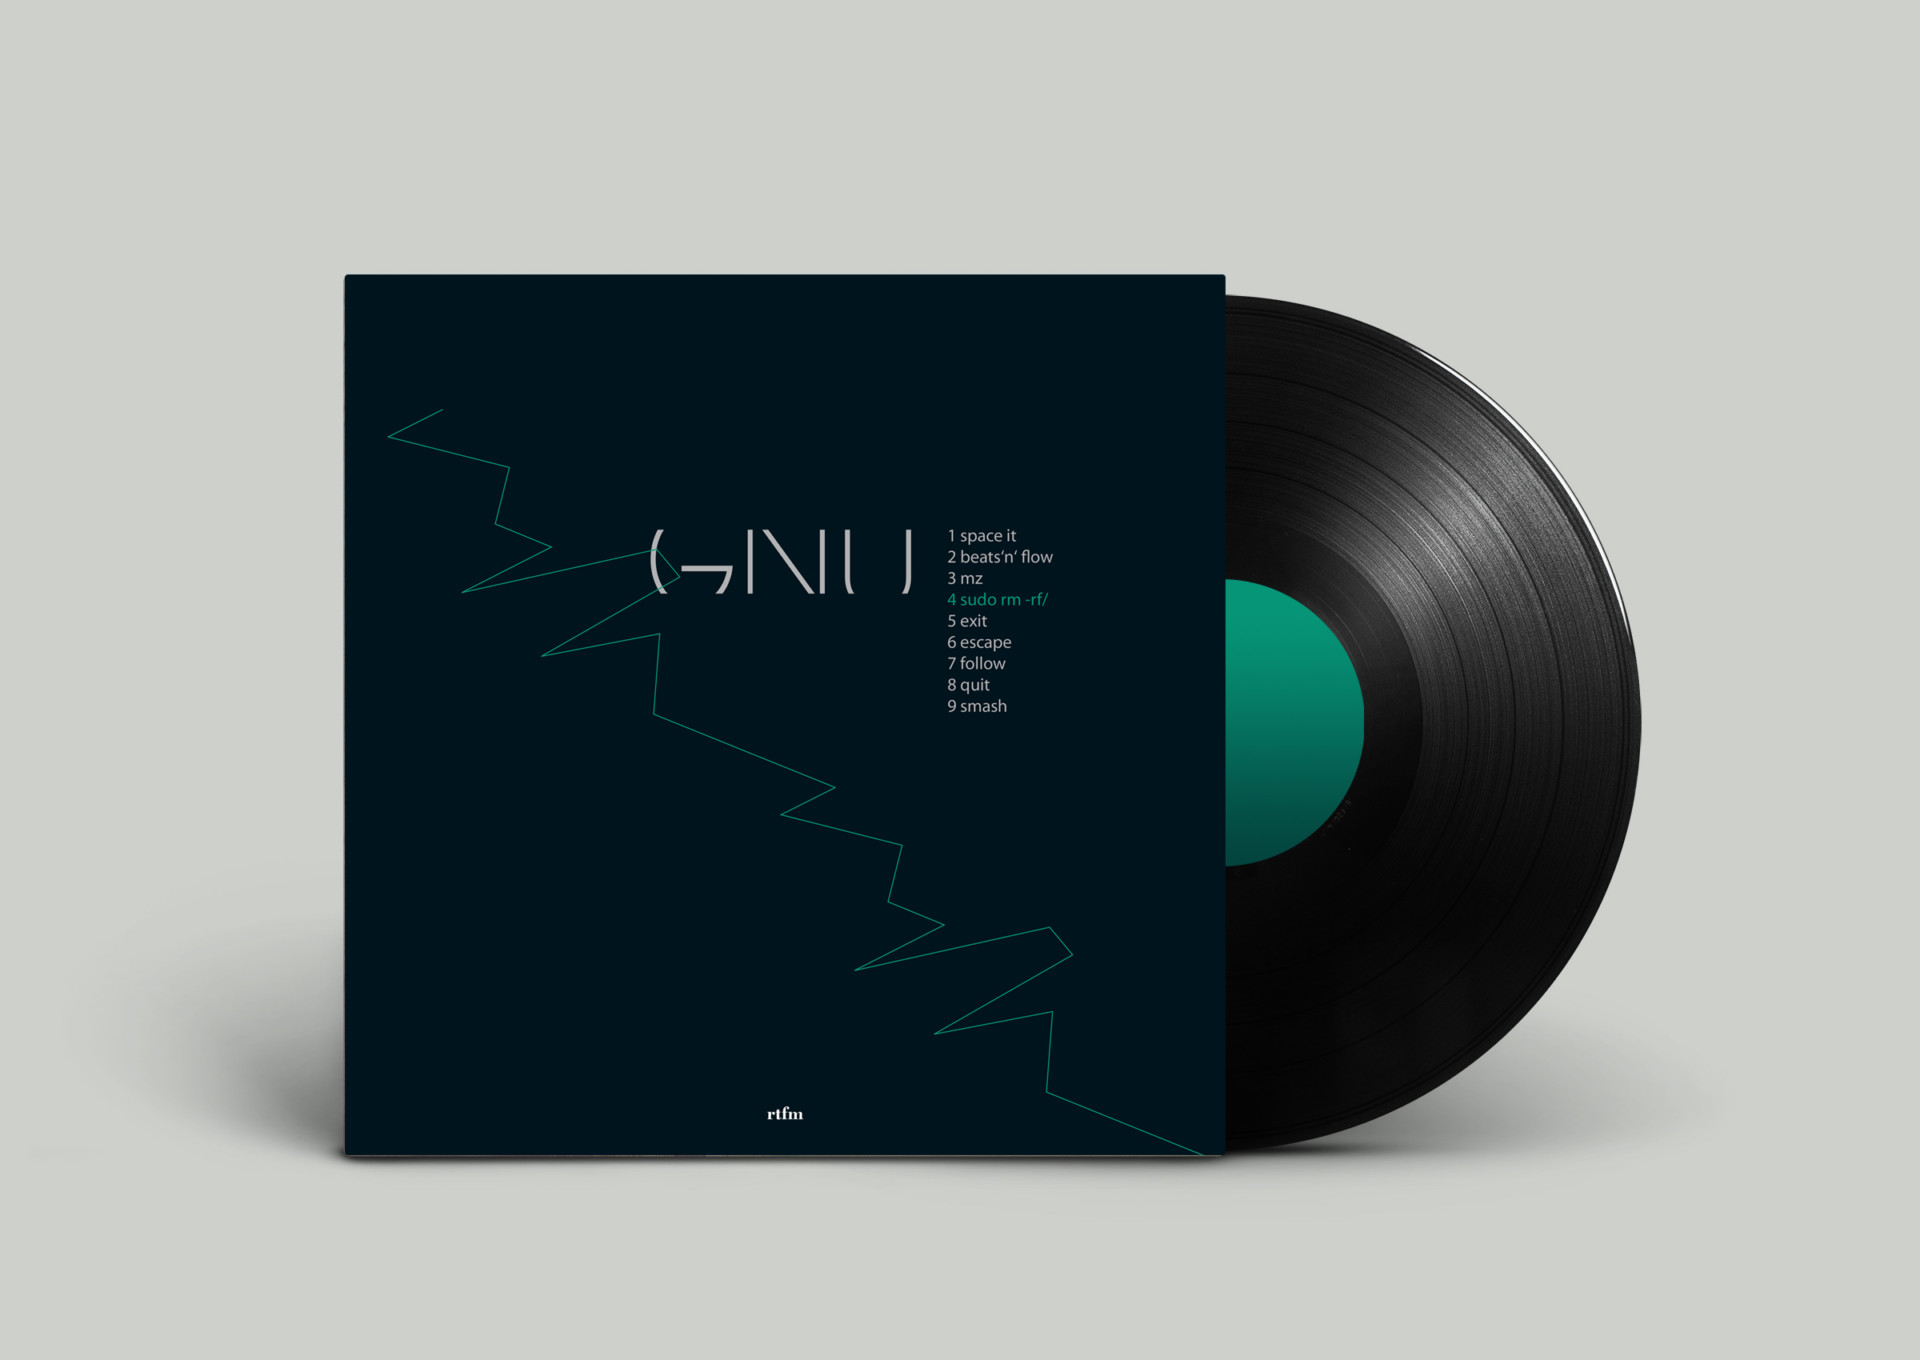 visual communication alessia pennetta record cover – generative design